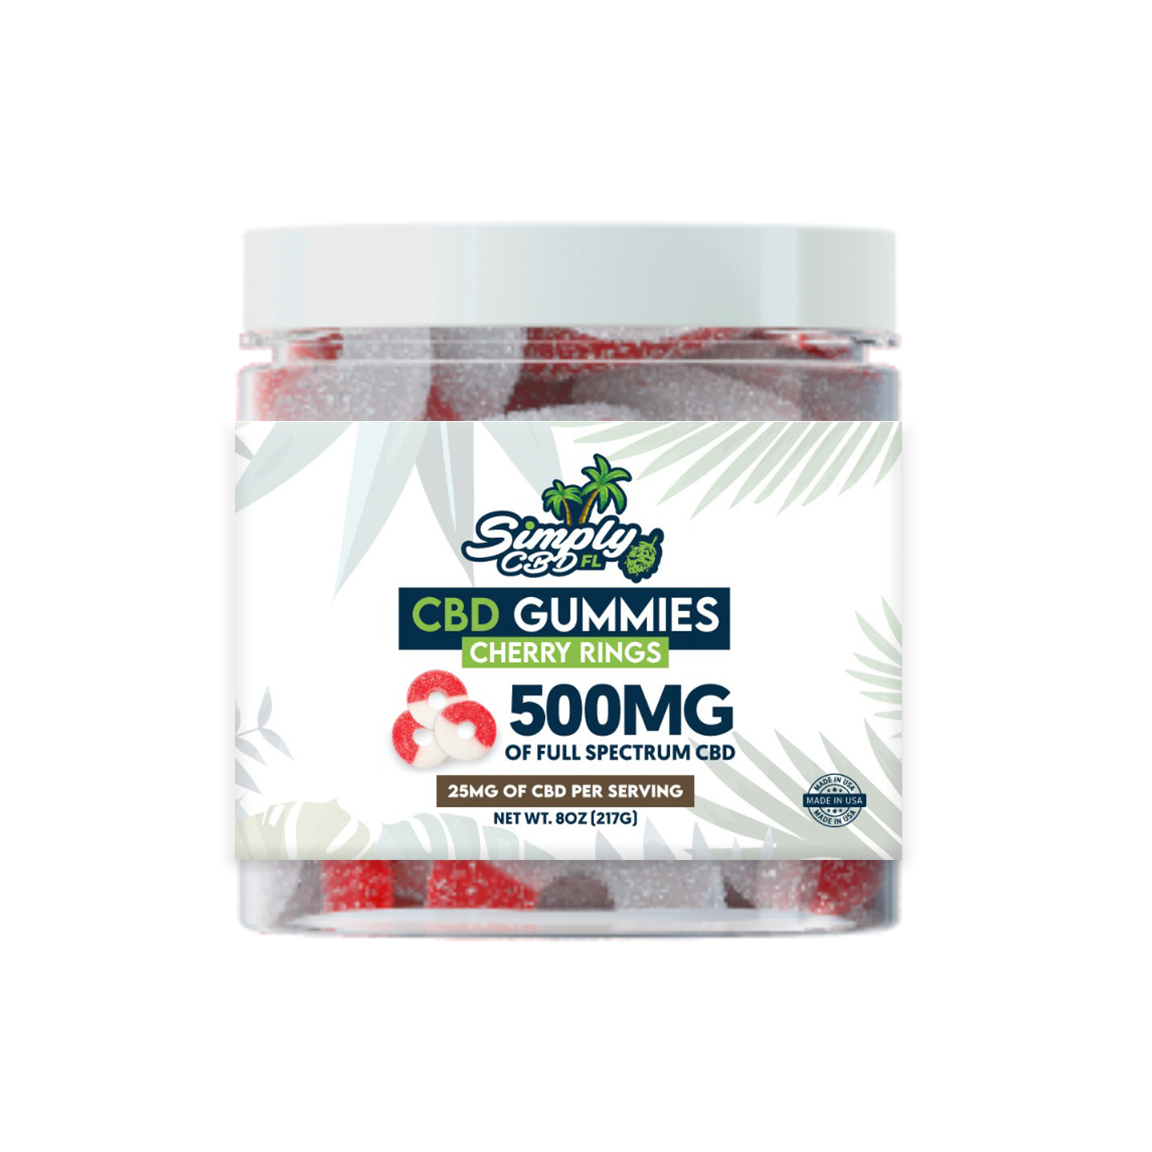 Simply CBD FL 500 MG Full Spectrum CBD Cherry Flavored Gummy Rings